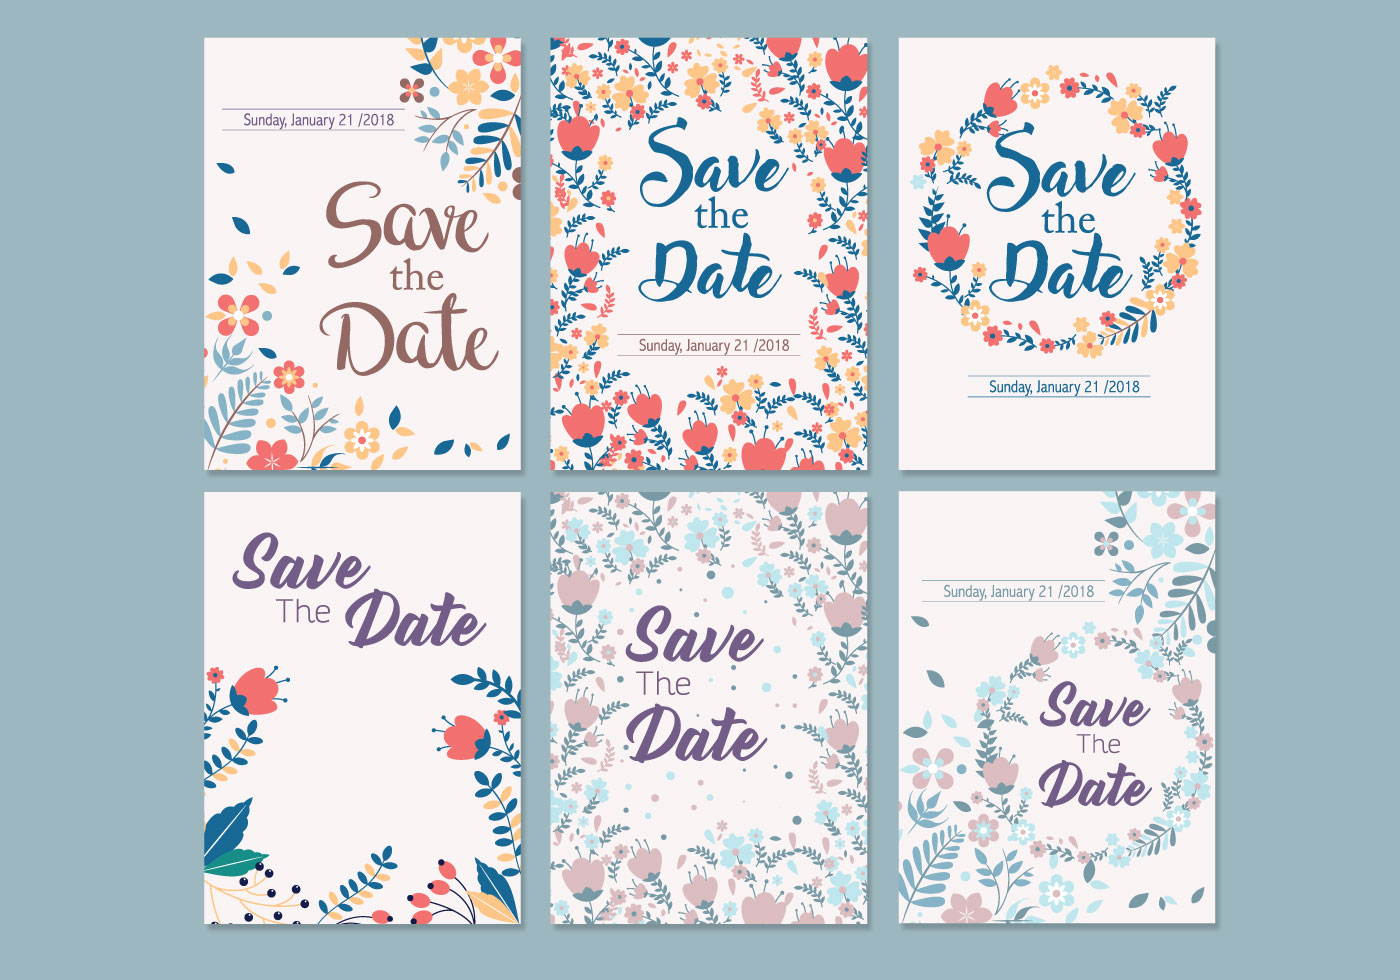 Save the date online templates in Perth